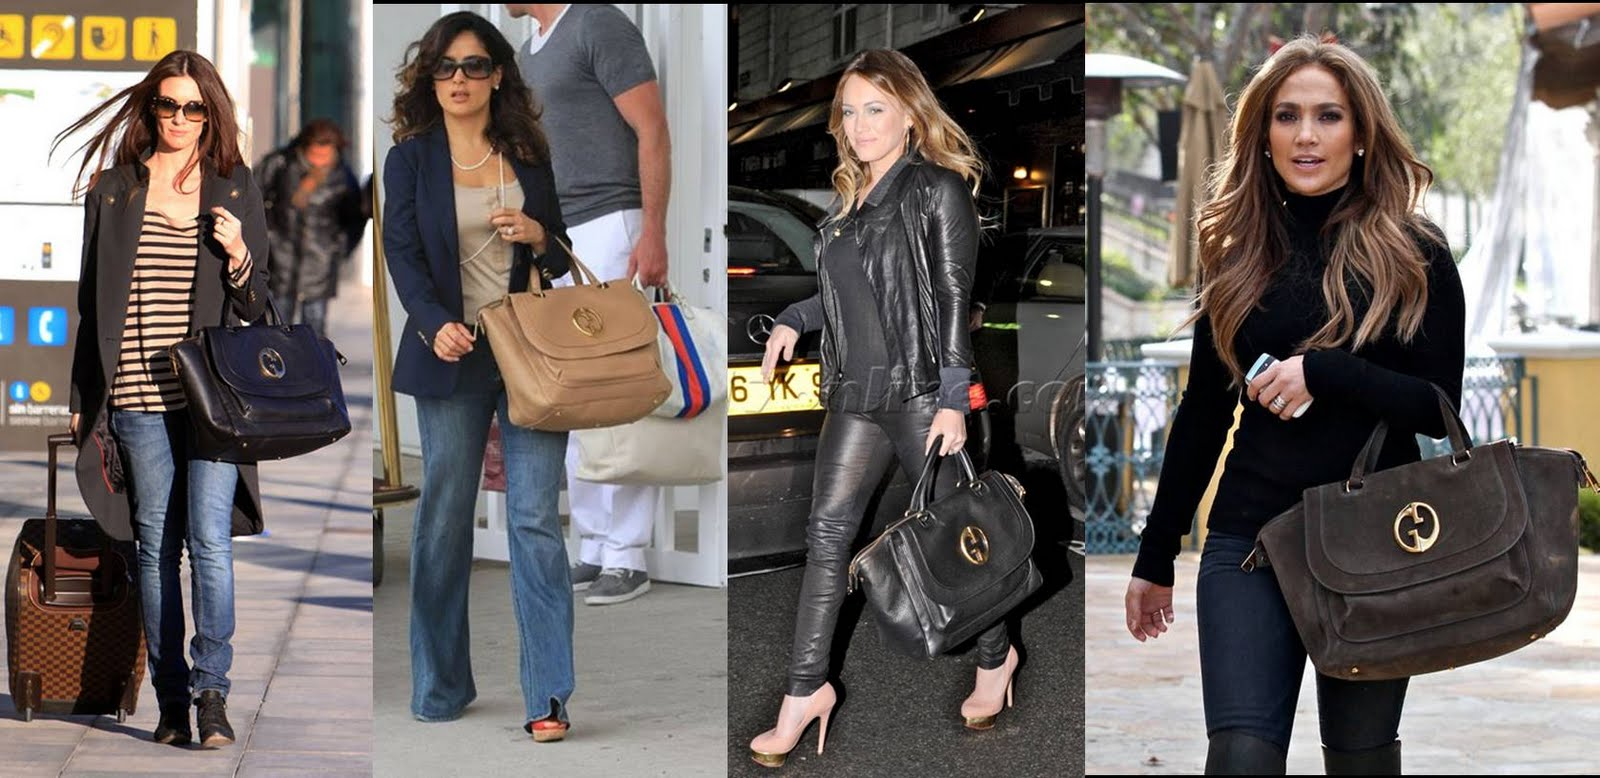 She Wanted A Leather Gucci Bag To Add Her Designer Handbags Collection Is Well Loved By Celebrities As Seen In The Pictures Below